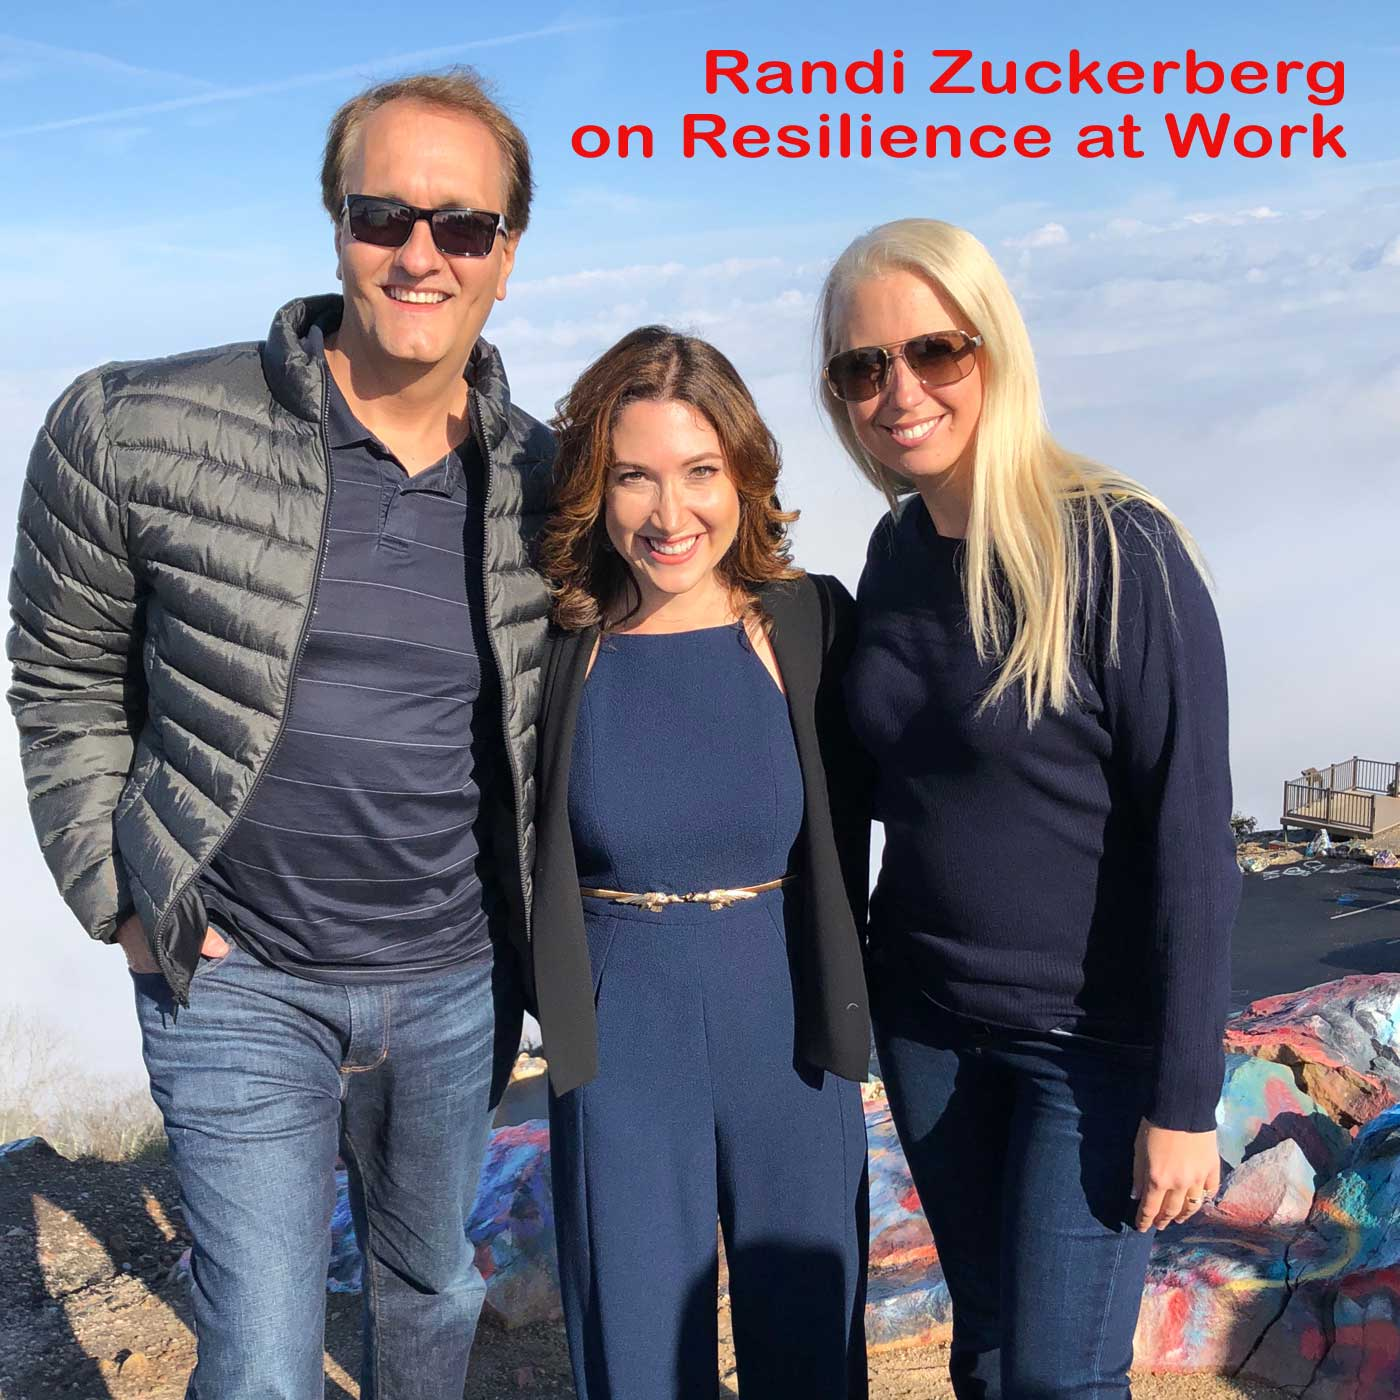 Randi-Zuckerberg-on-Resilience-at-Work-with-Peter-Diaz-and-Emi-Golding